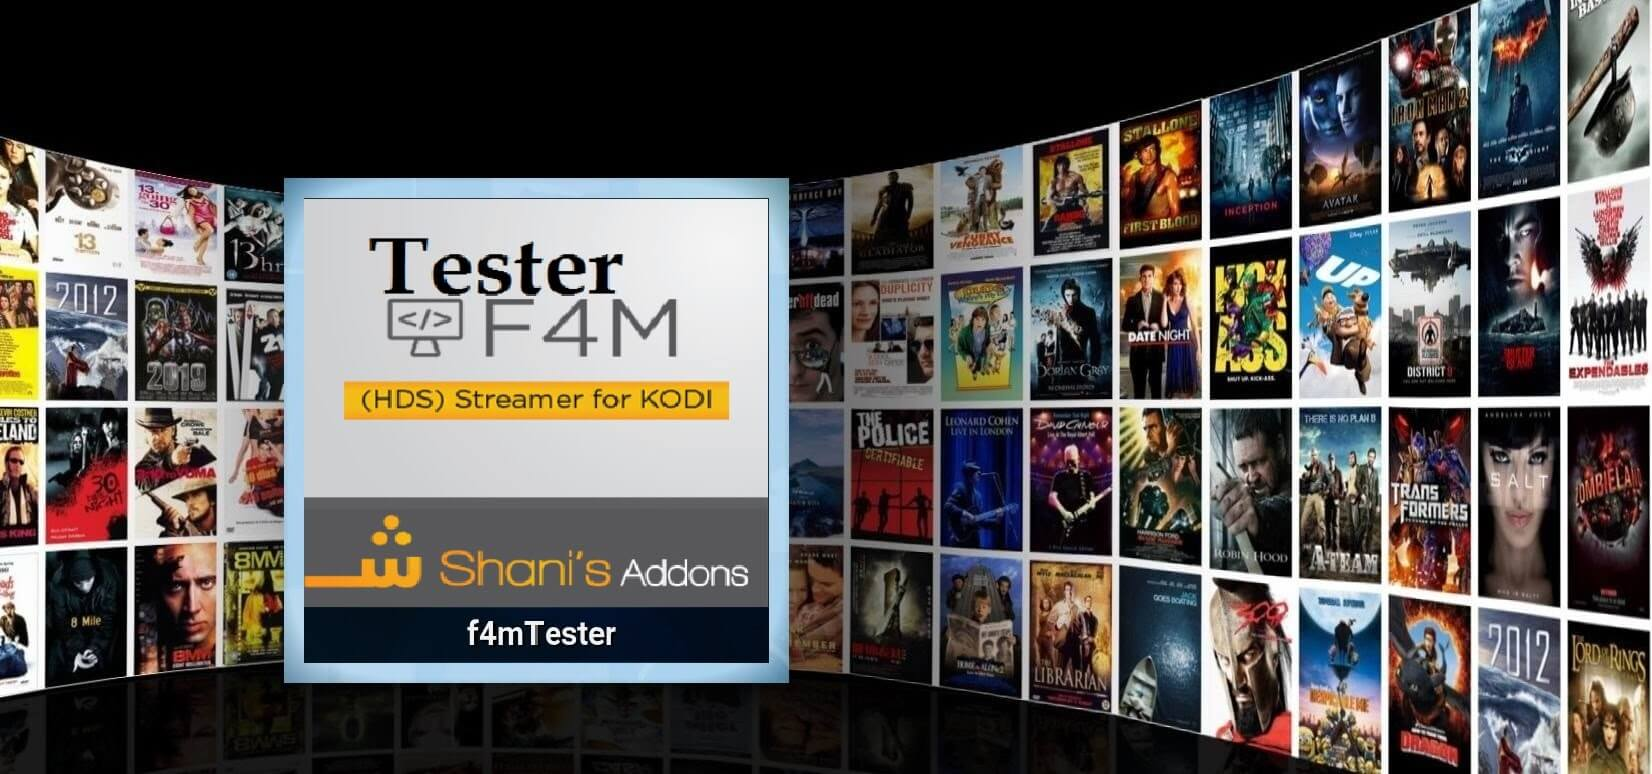 How to Install F4M Tester Kodi addon on Krypton